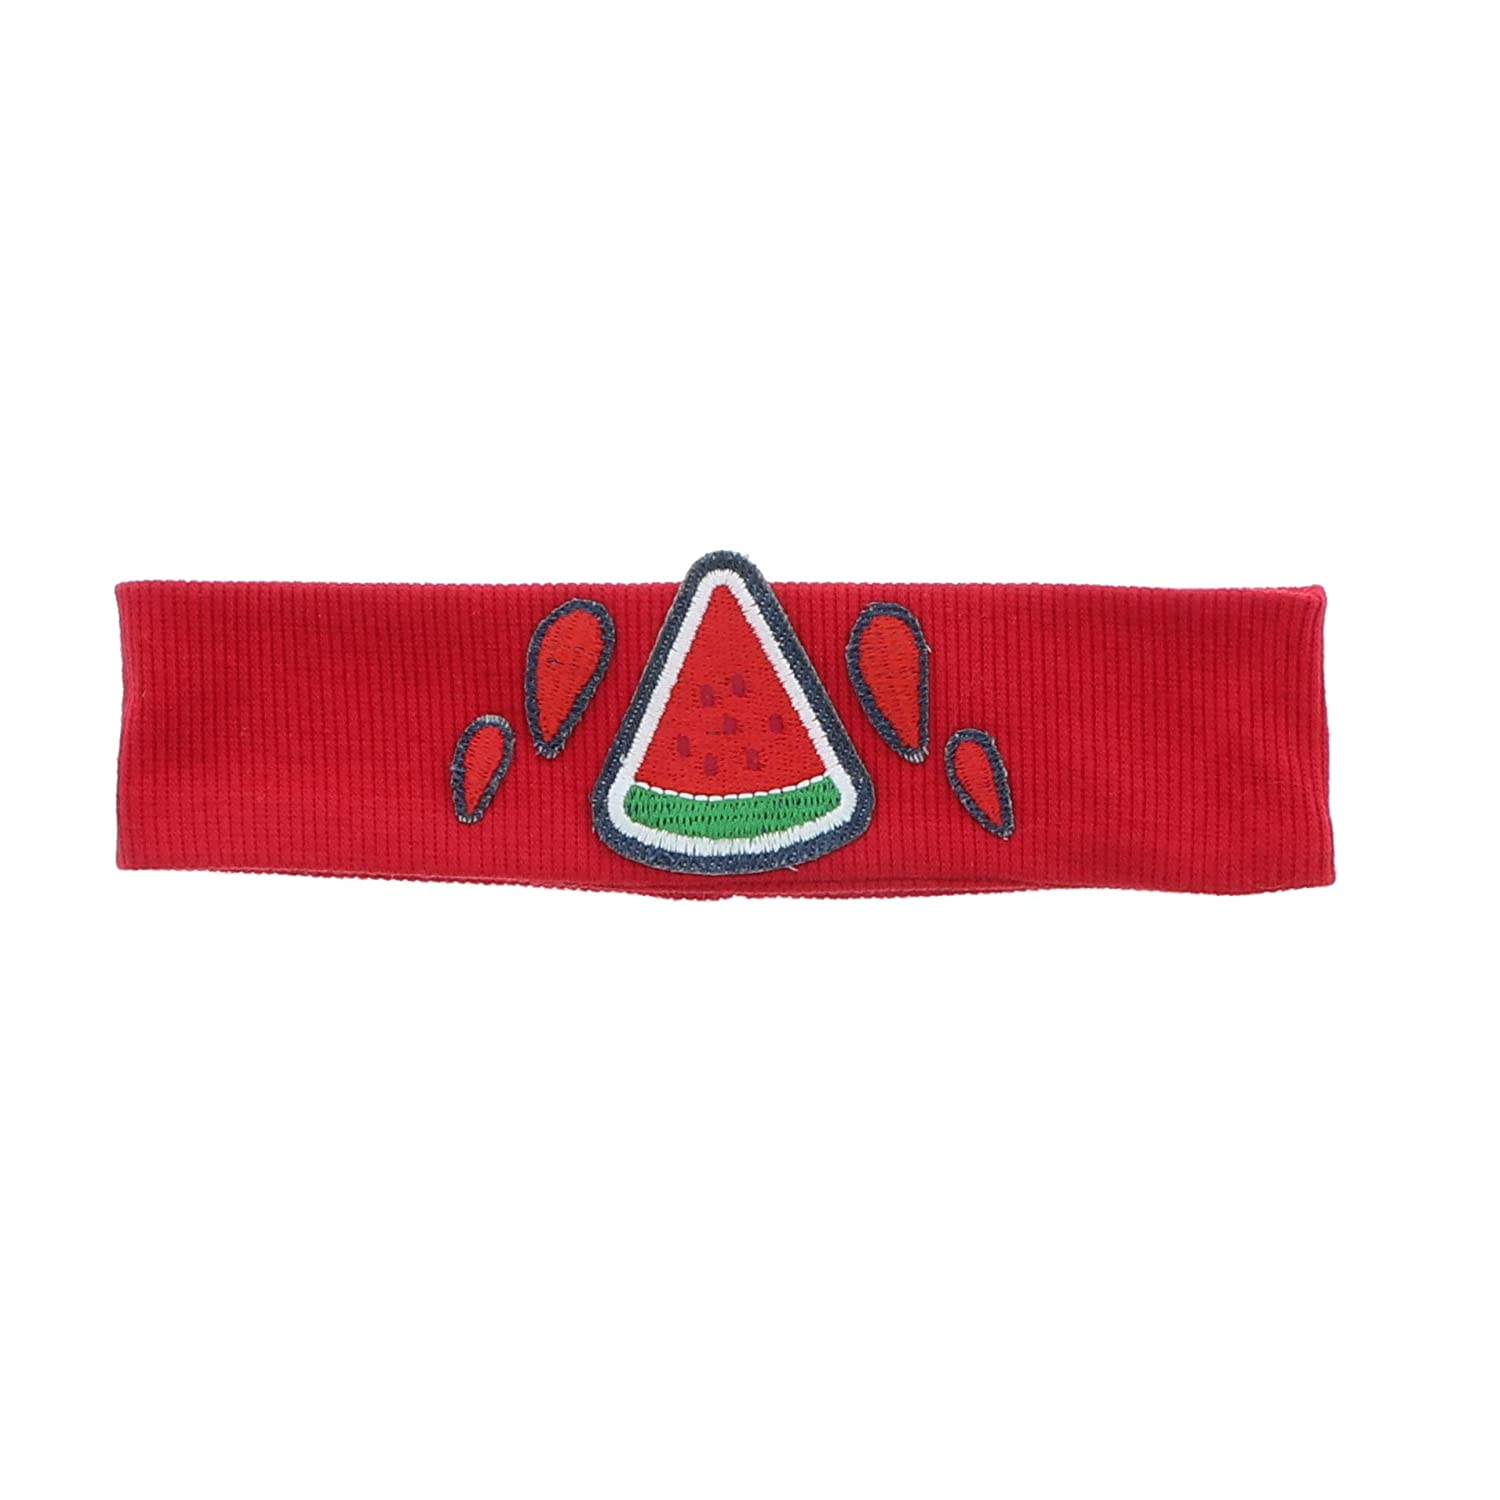 Baby Band Headband with Watermelon Slice - Red